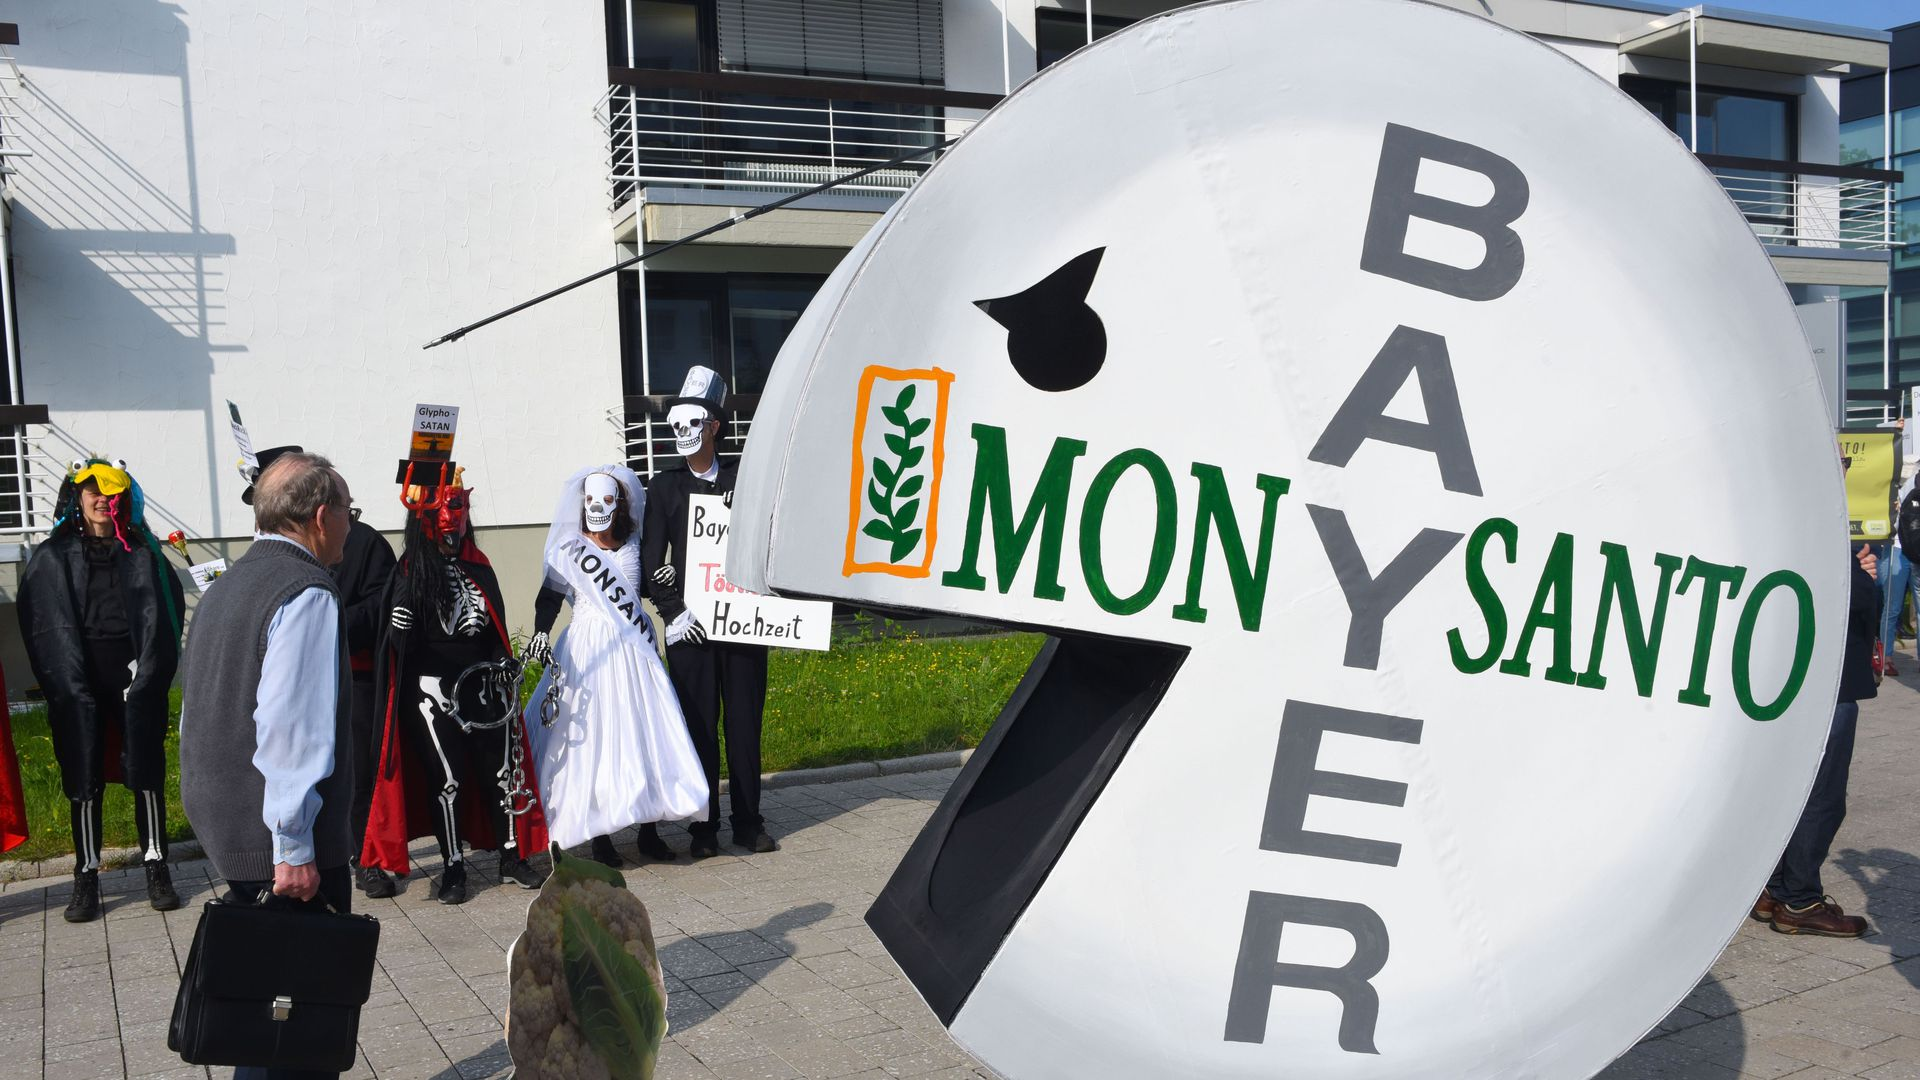 Protest against the Bayer-Monsanto merger.